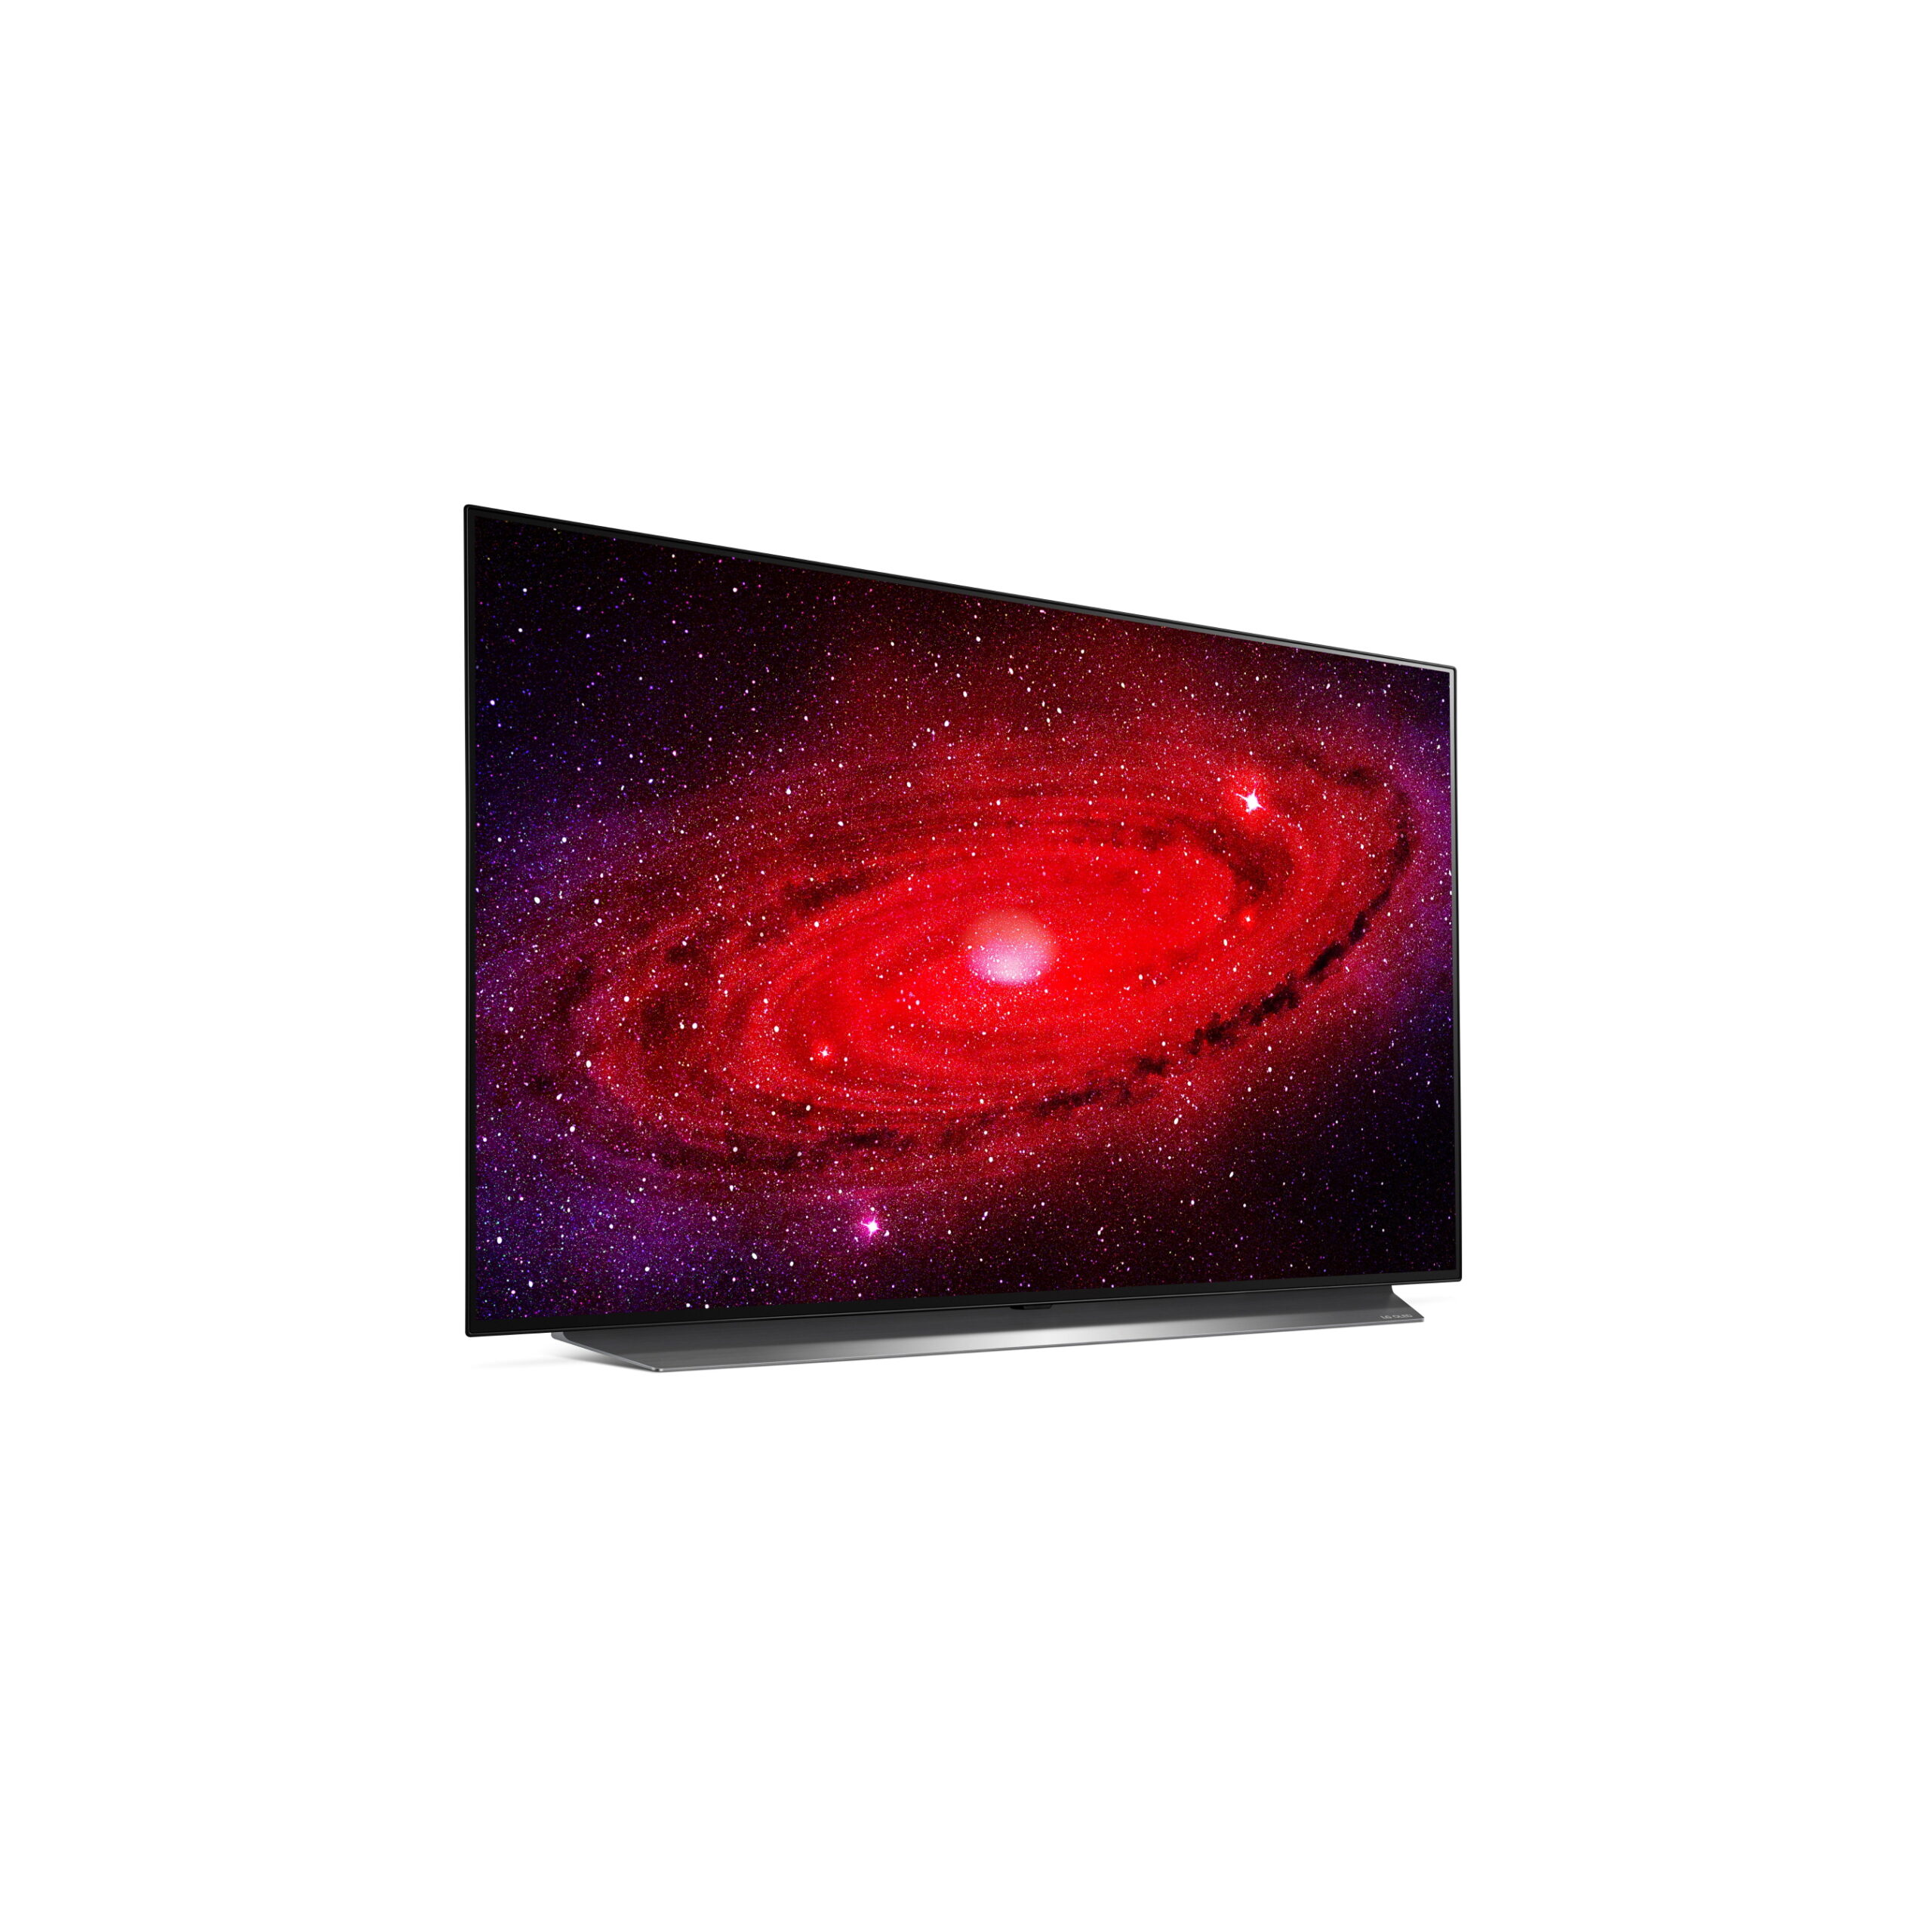 Left side view of LG's 48-inch OLED TV displaying a galaxy in extreme detail with powerful reds and purples